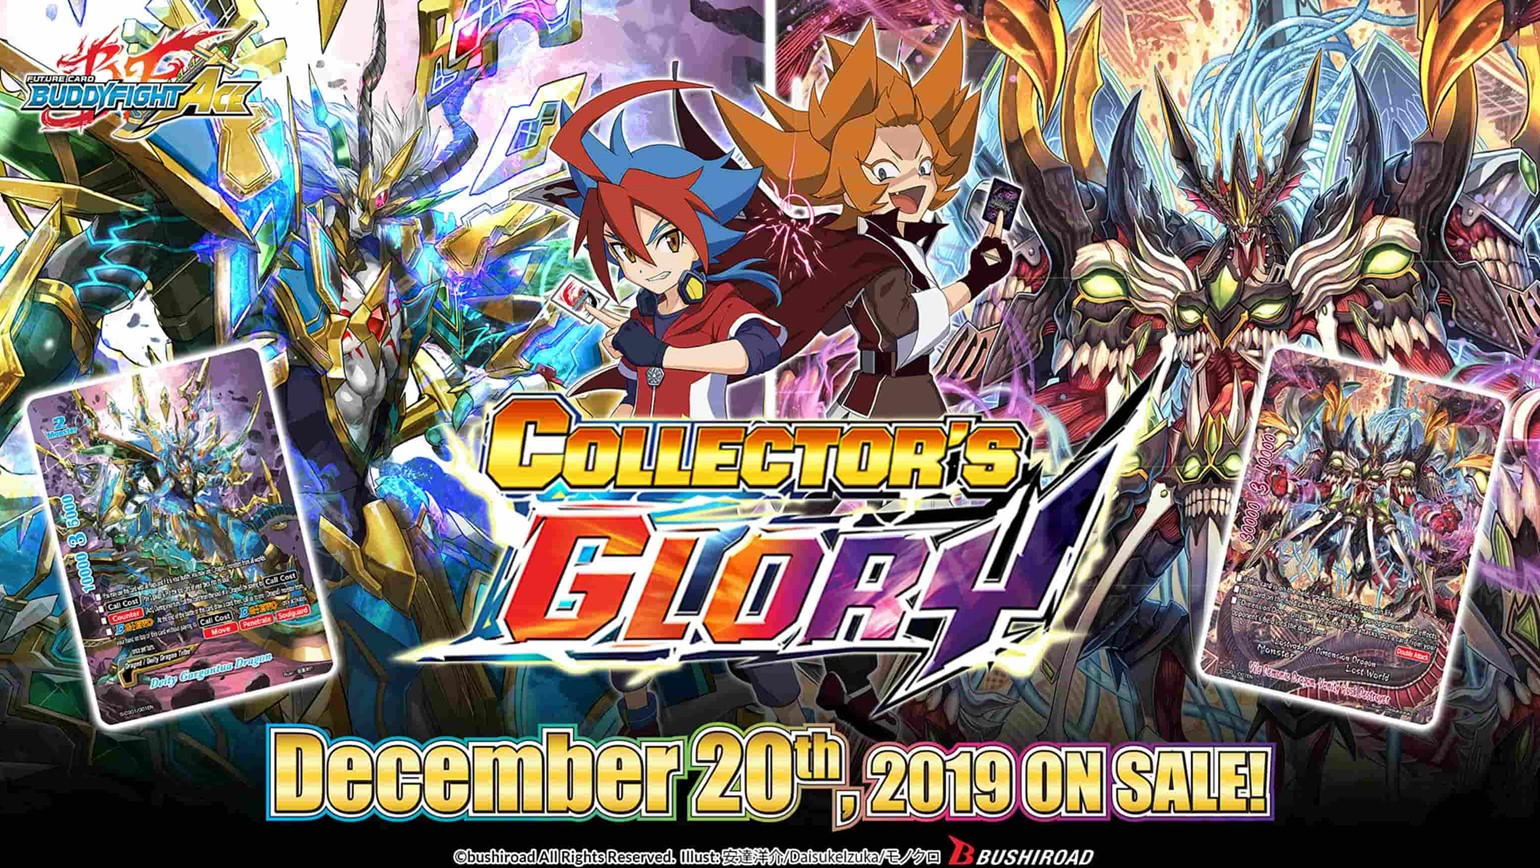 Future Card Buddyfight Ace Collector's Glory Coming December 20th